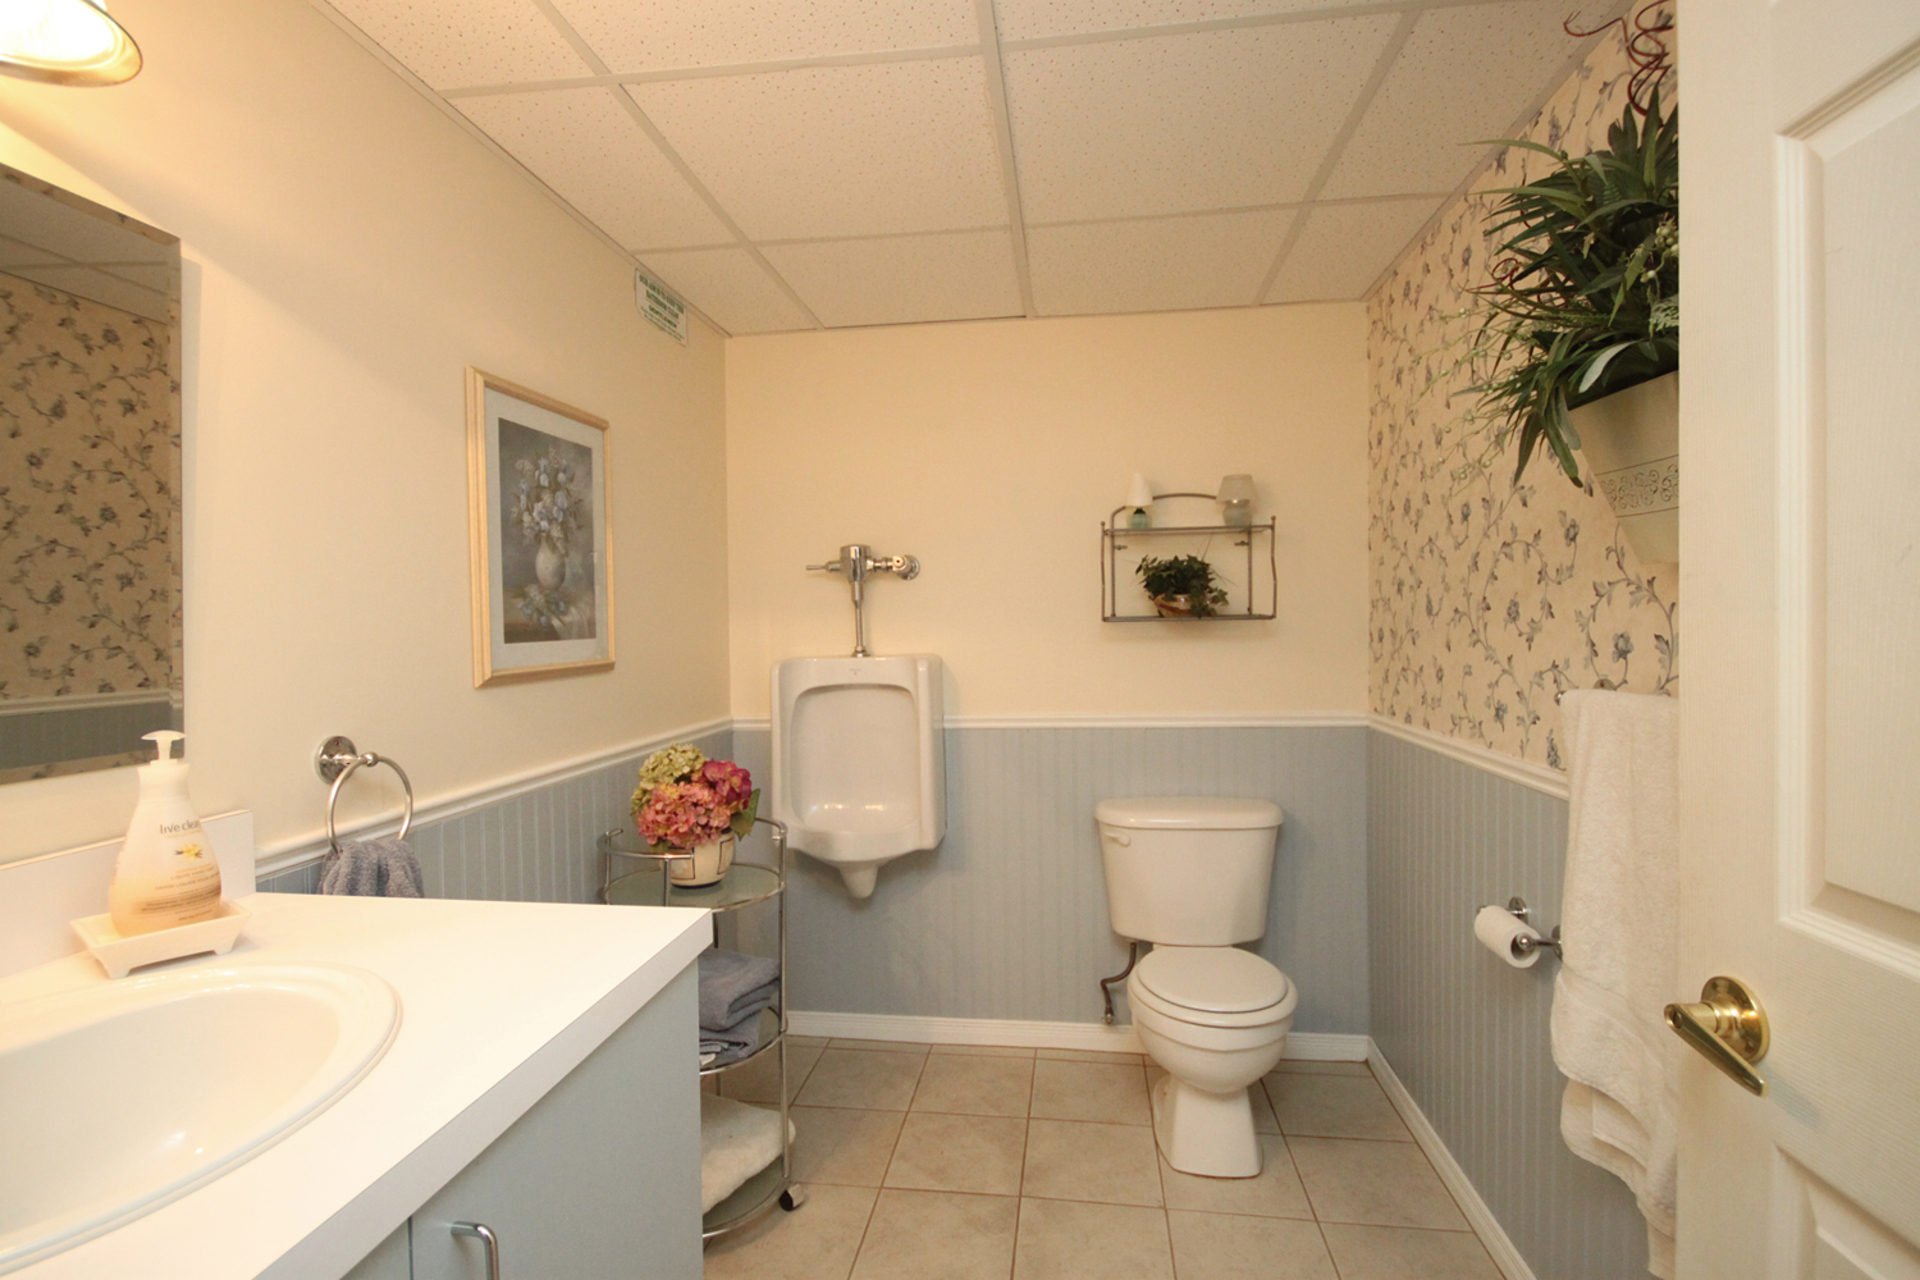 3 Piece Bathroom at 1182 Maple Gate Road, Liverpool, Pickering